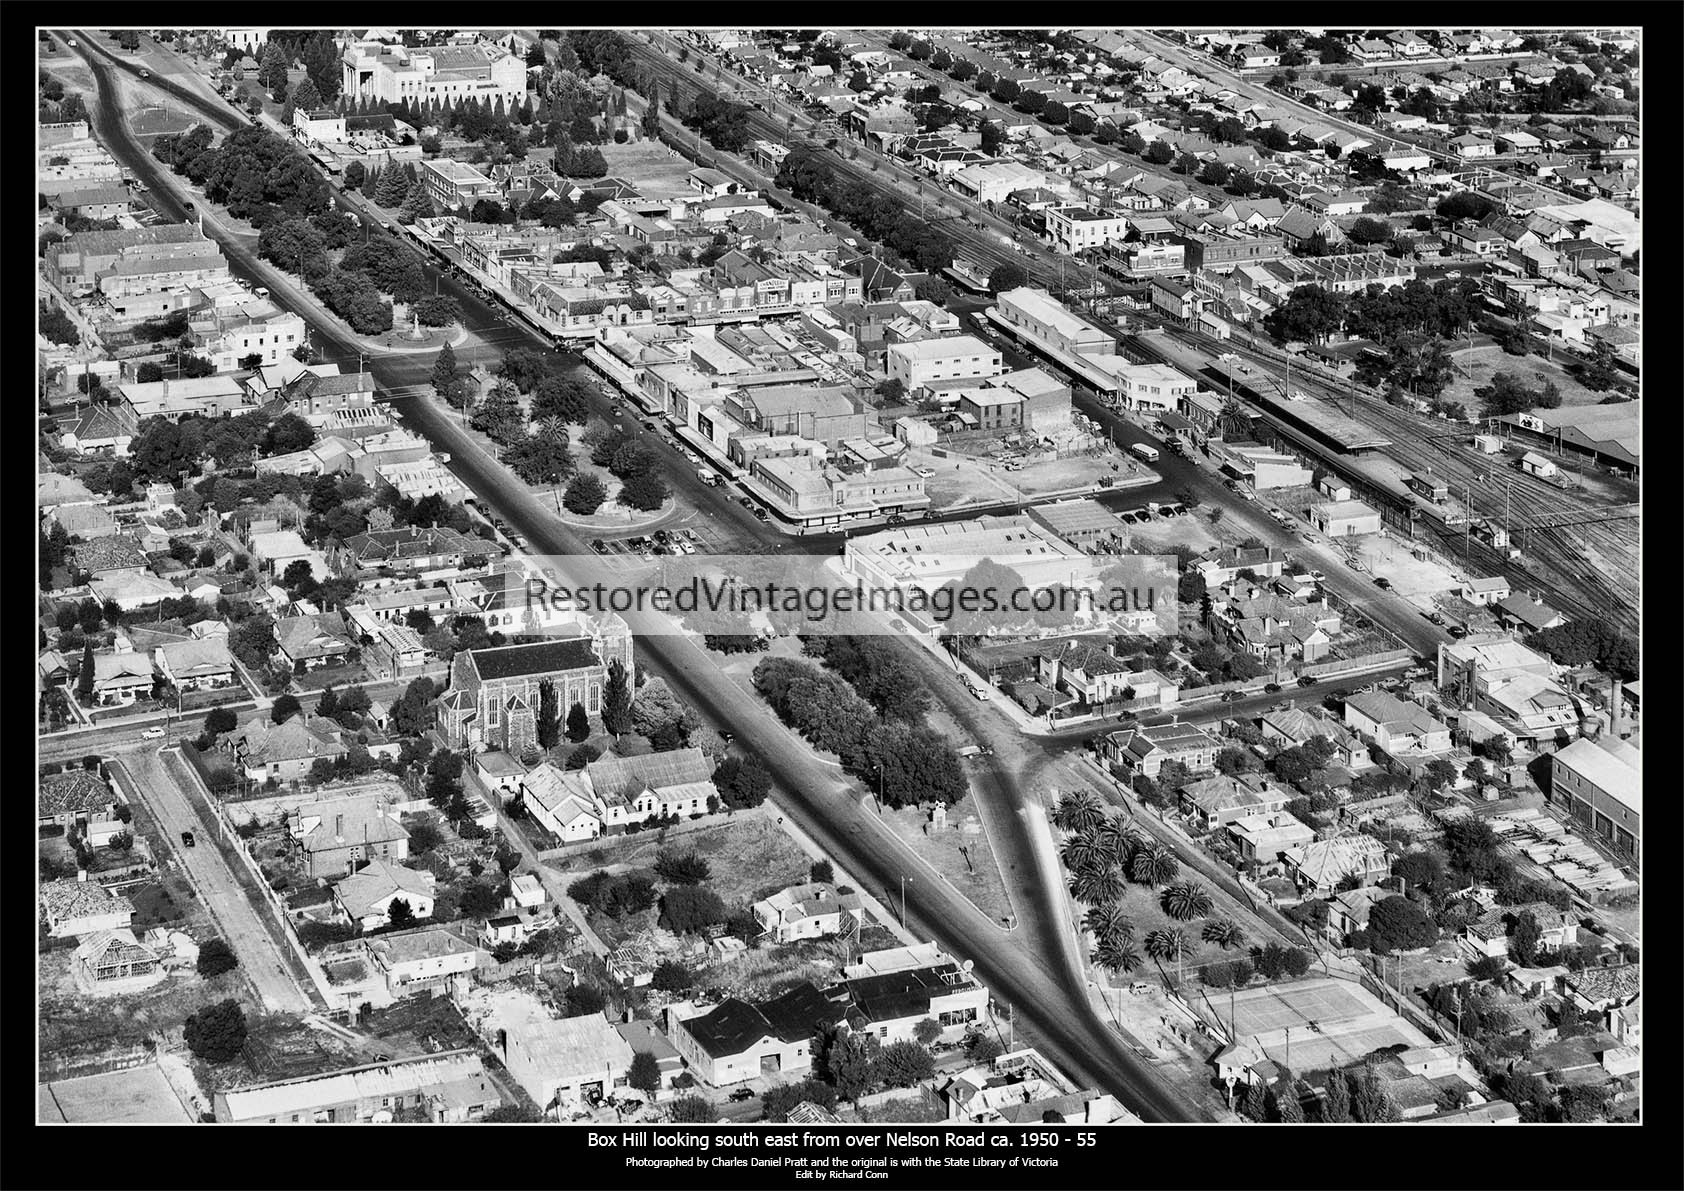 Box Hill Aerial, Looking South East From Above The Junction Of Nelson And Whitehorse Roads Ca. 1950-55